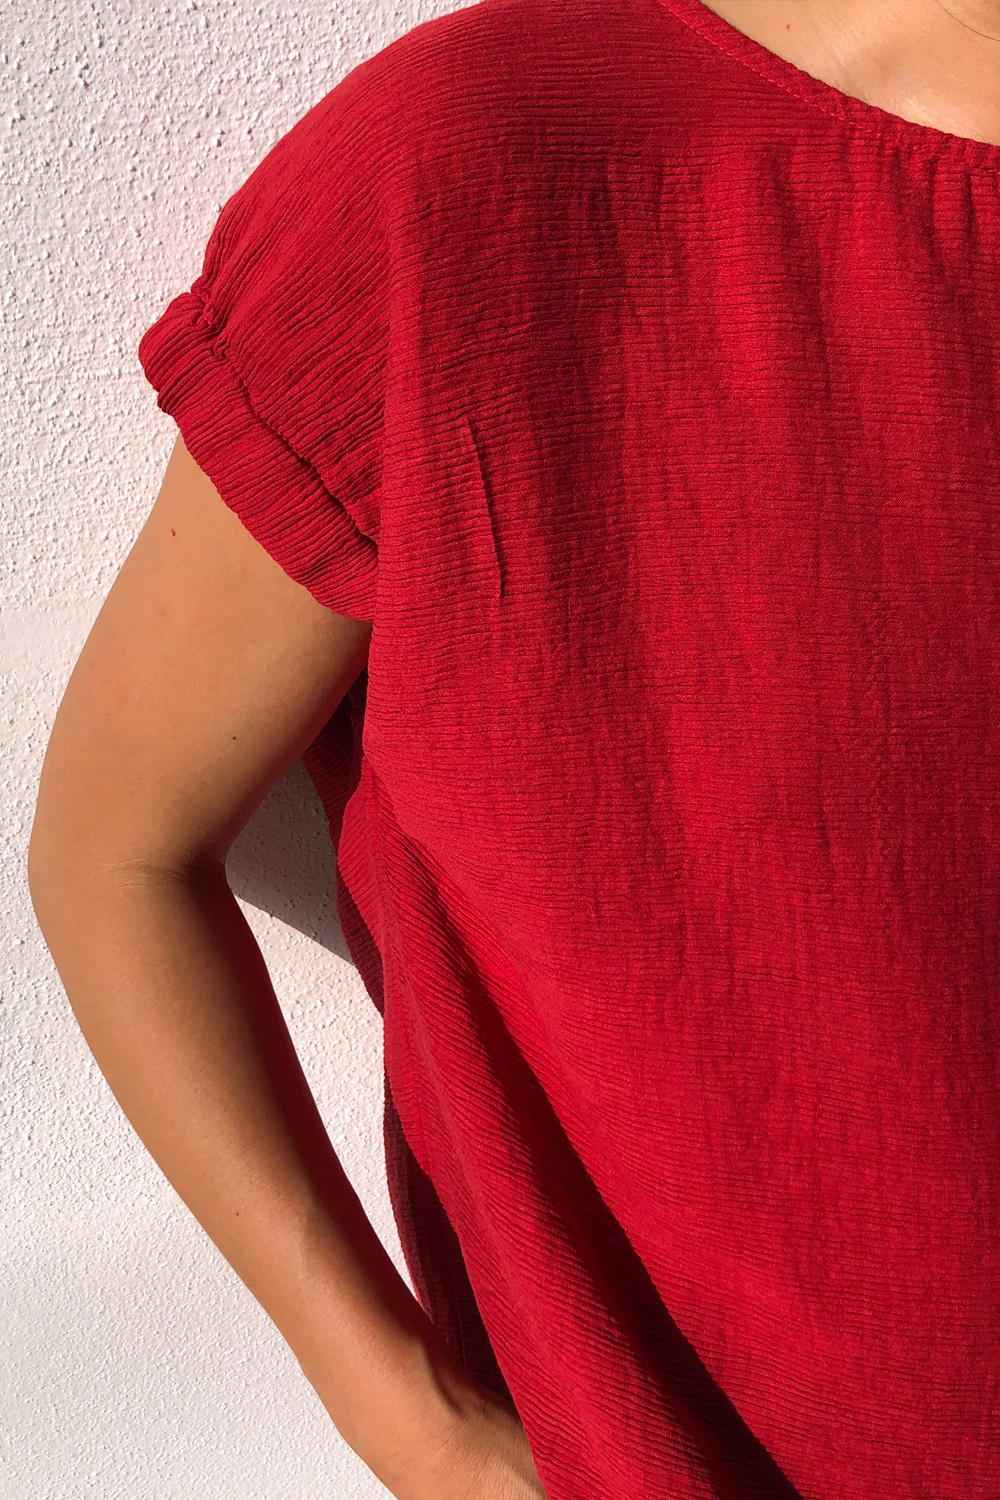 LA제작 / IM elastic blouse PL(mars red)_당일배송